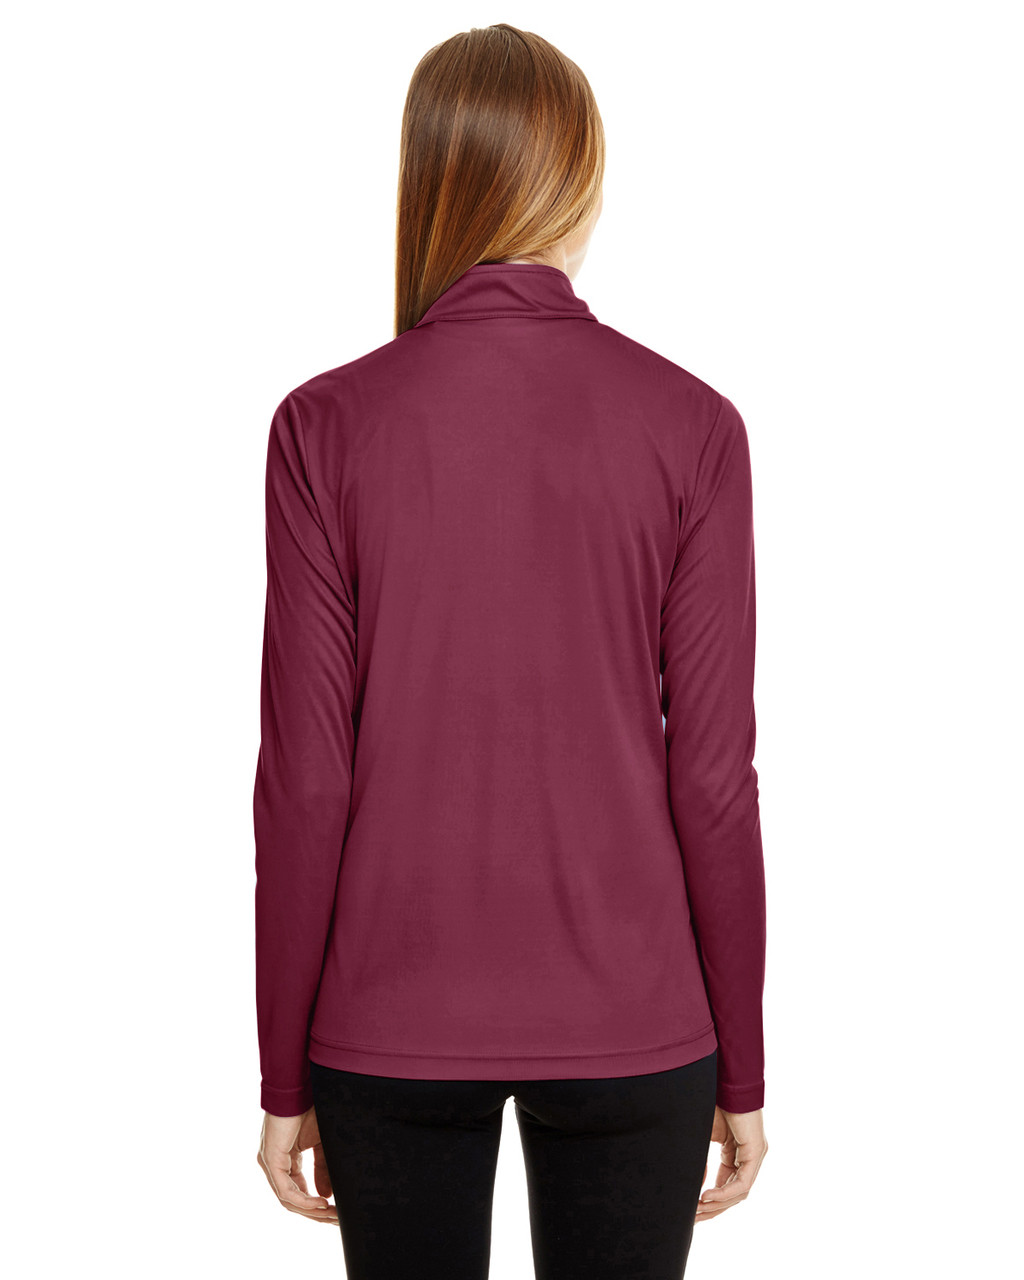 Sport Maroon - TT31W Team 365 Ladies' Zone Performance Quarter-Zip Shirt